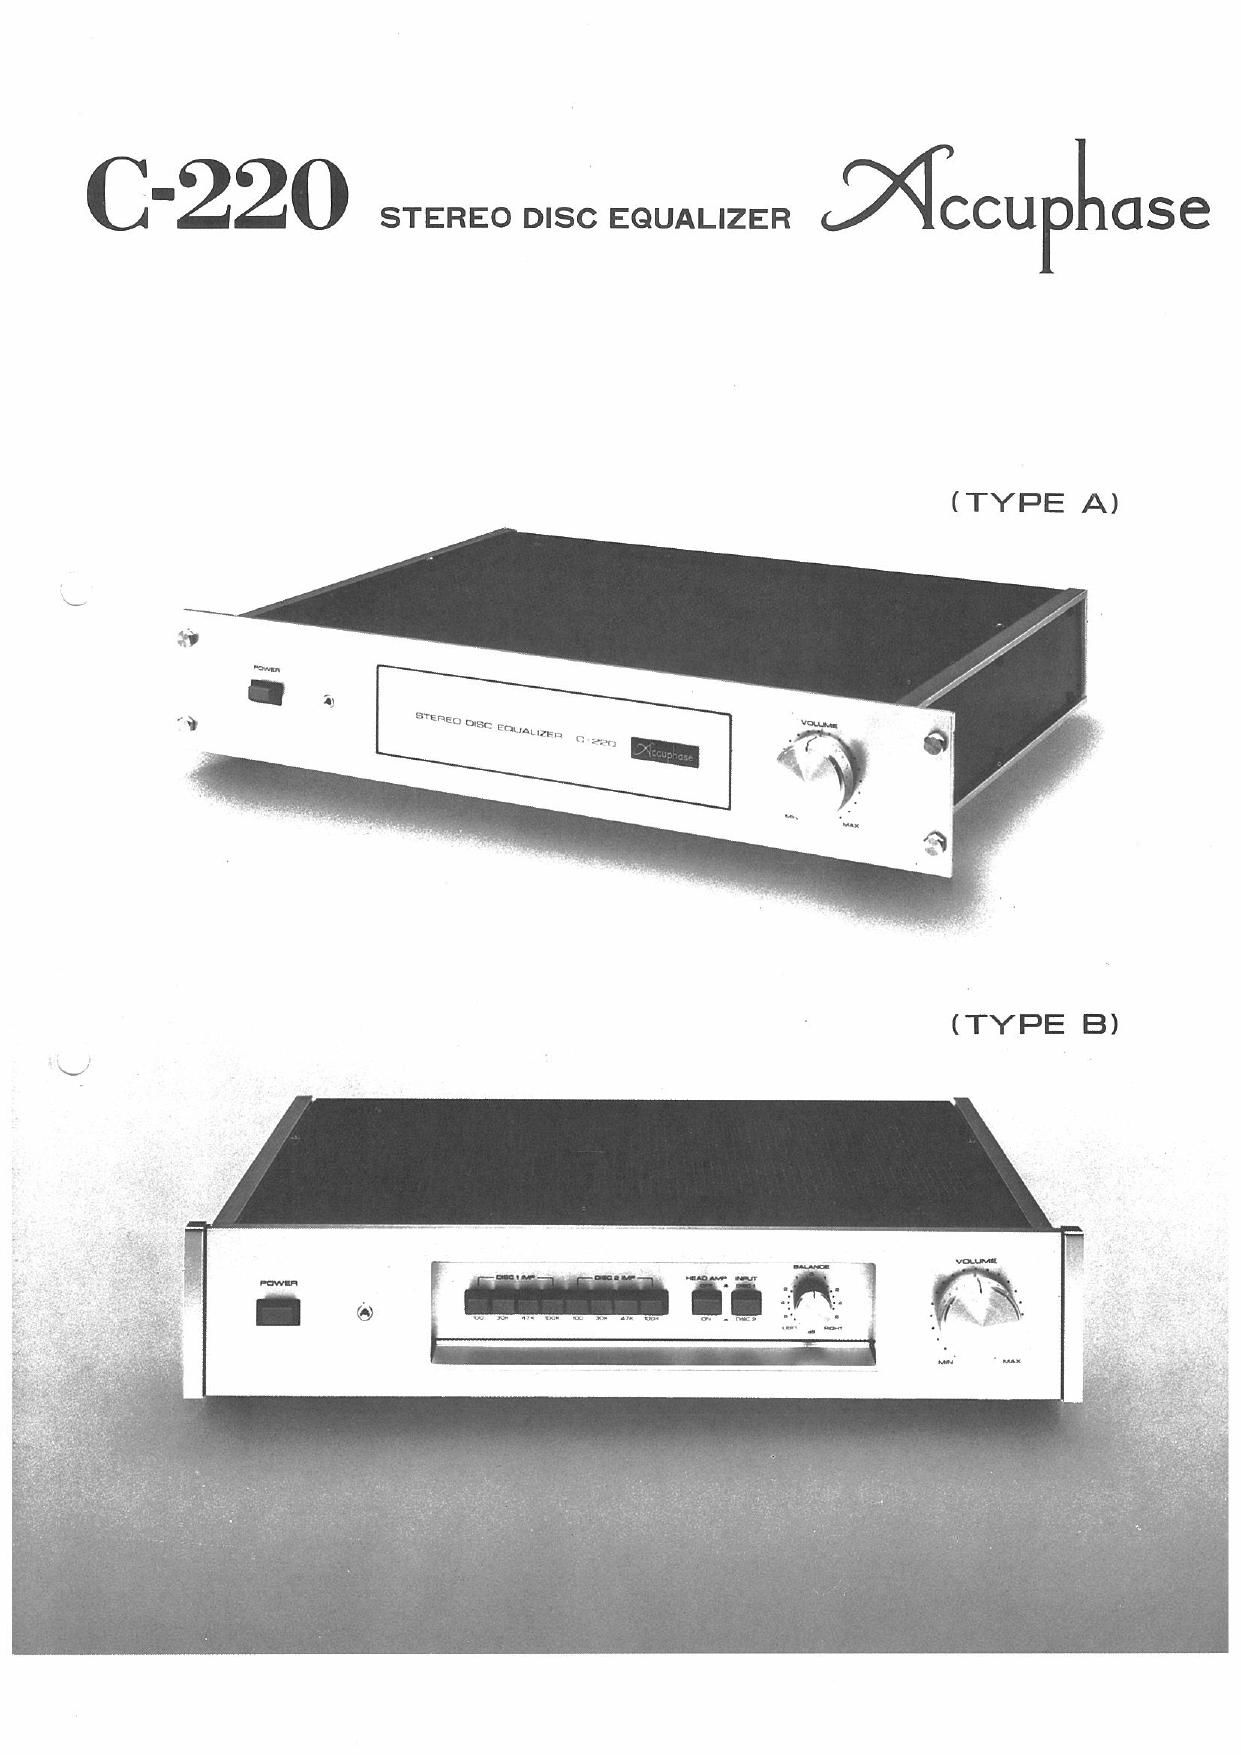 Accuphase C 220 Brochure